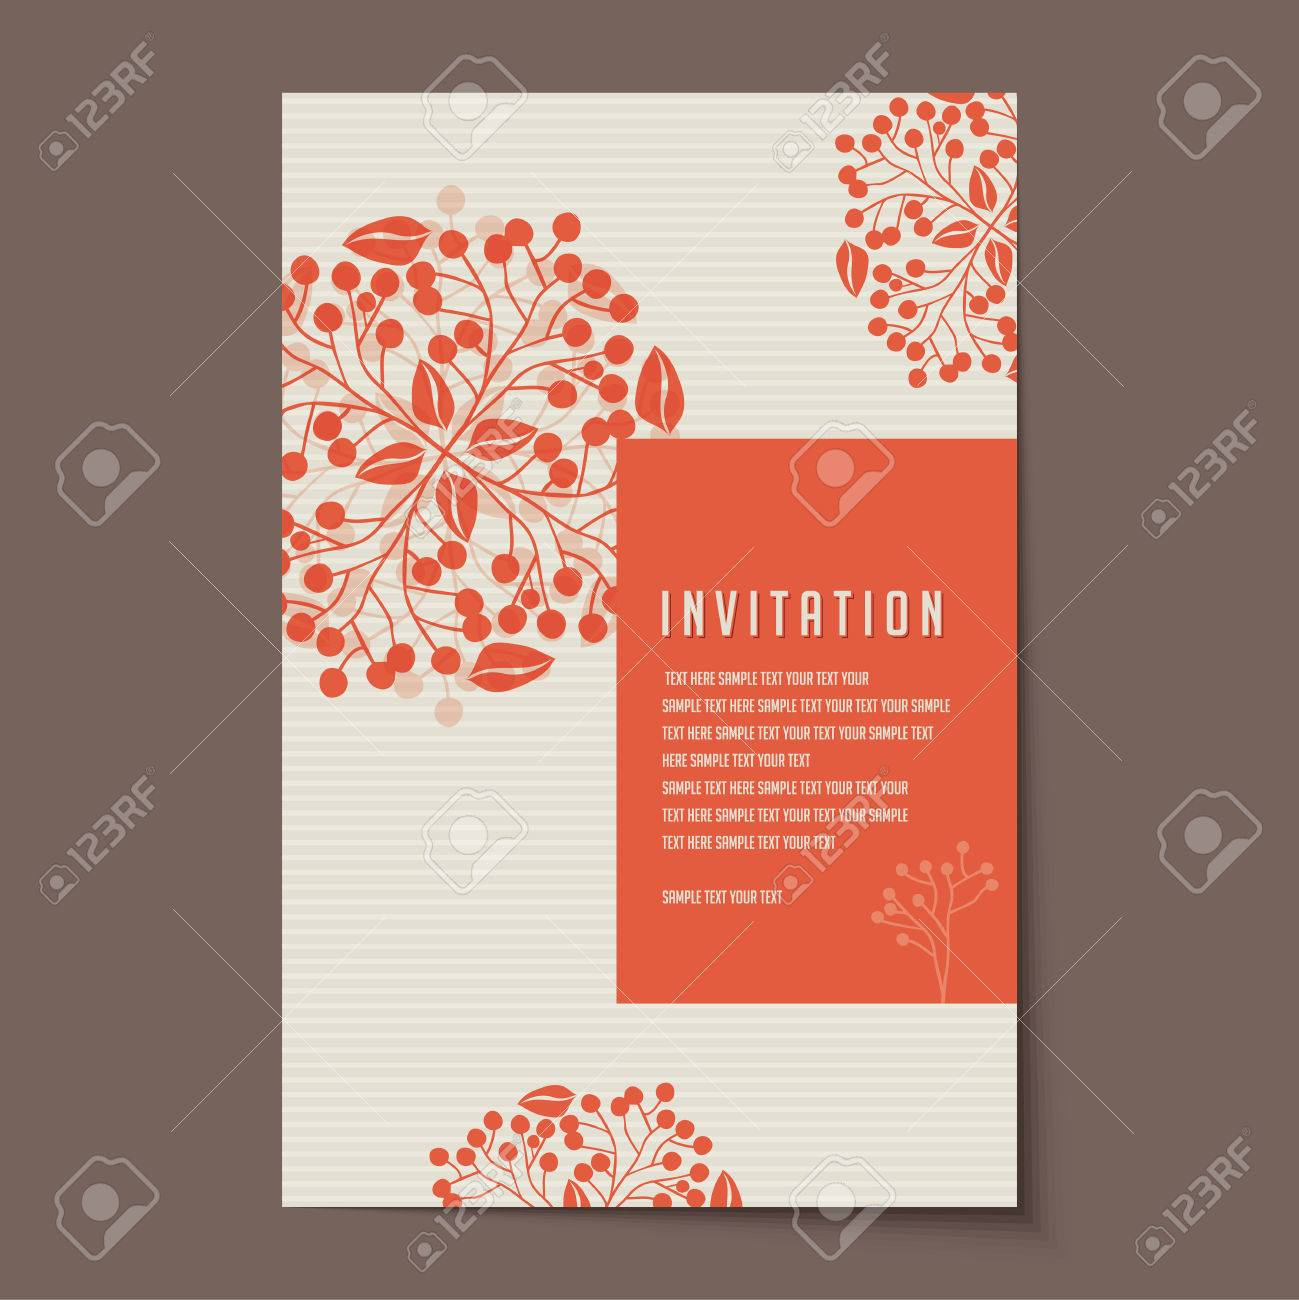 Invitation Card Design For Wedding Or Announcements Royalty Free ...